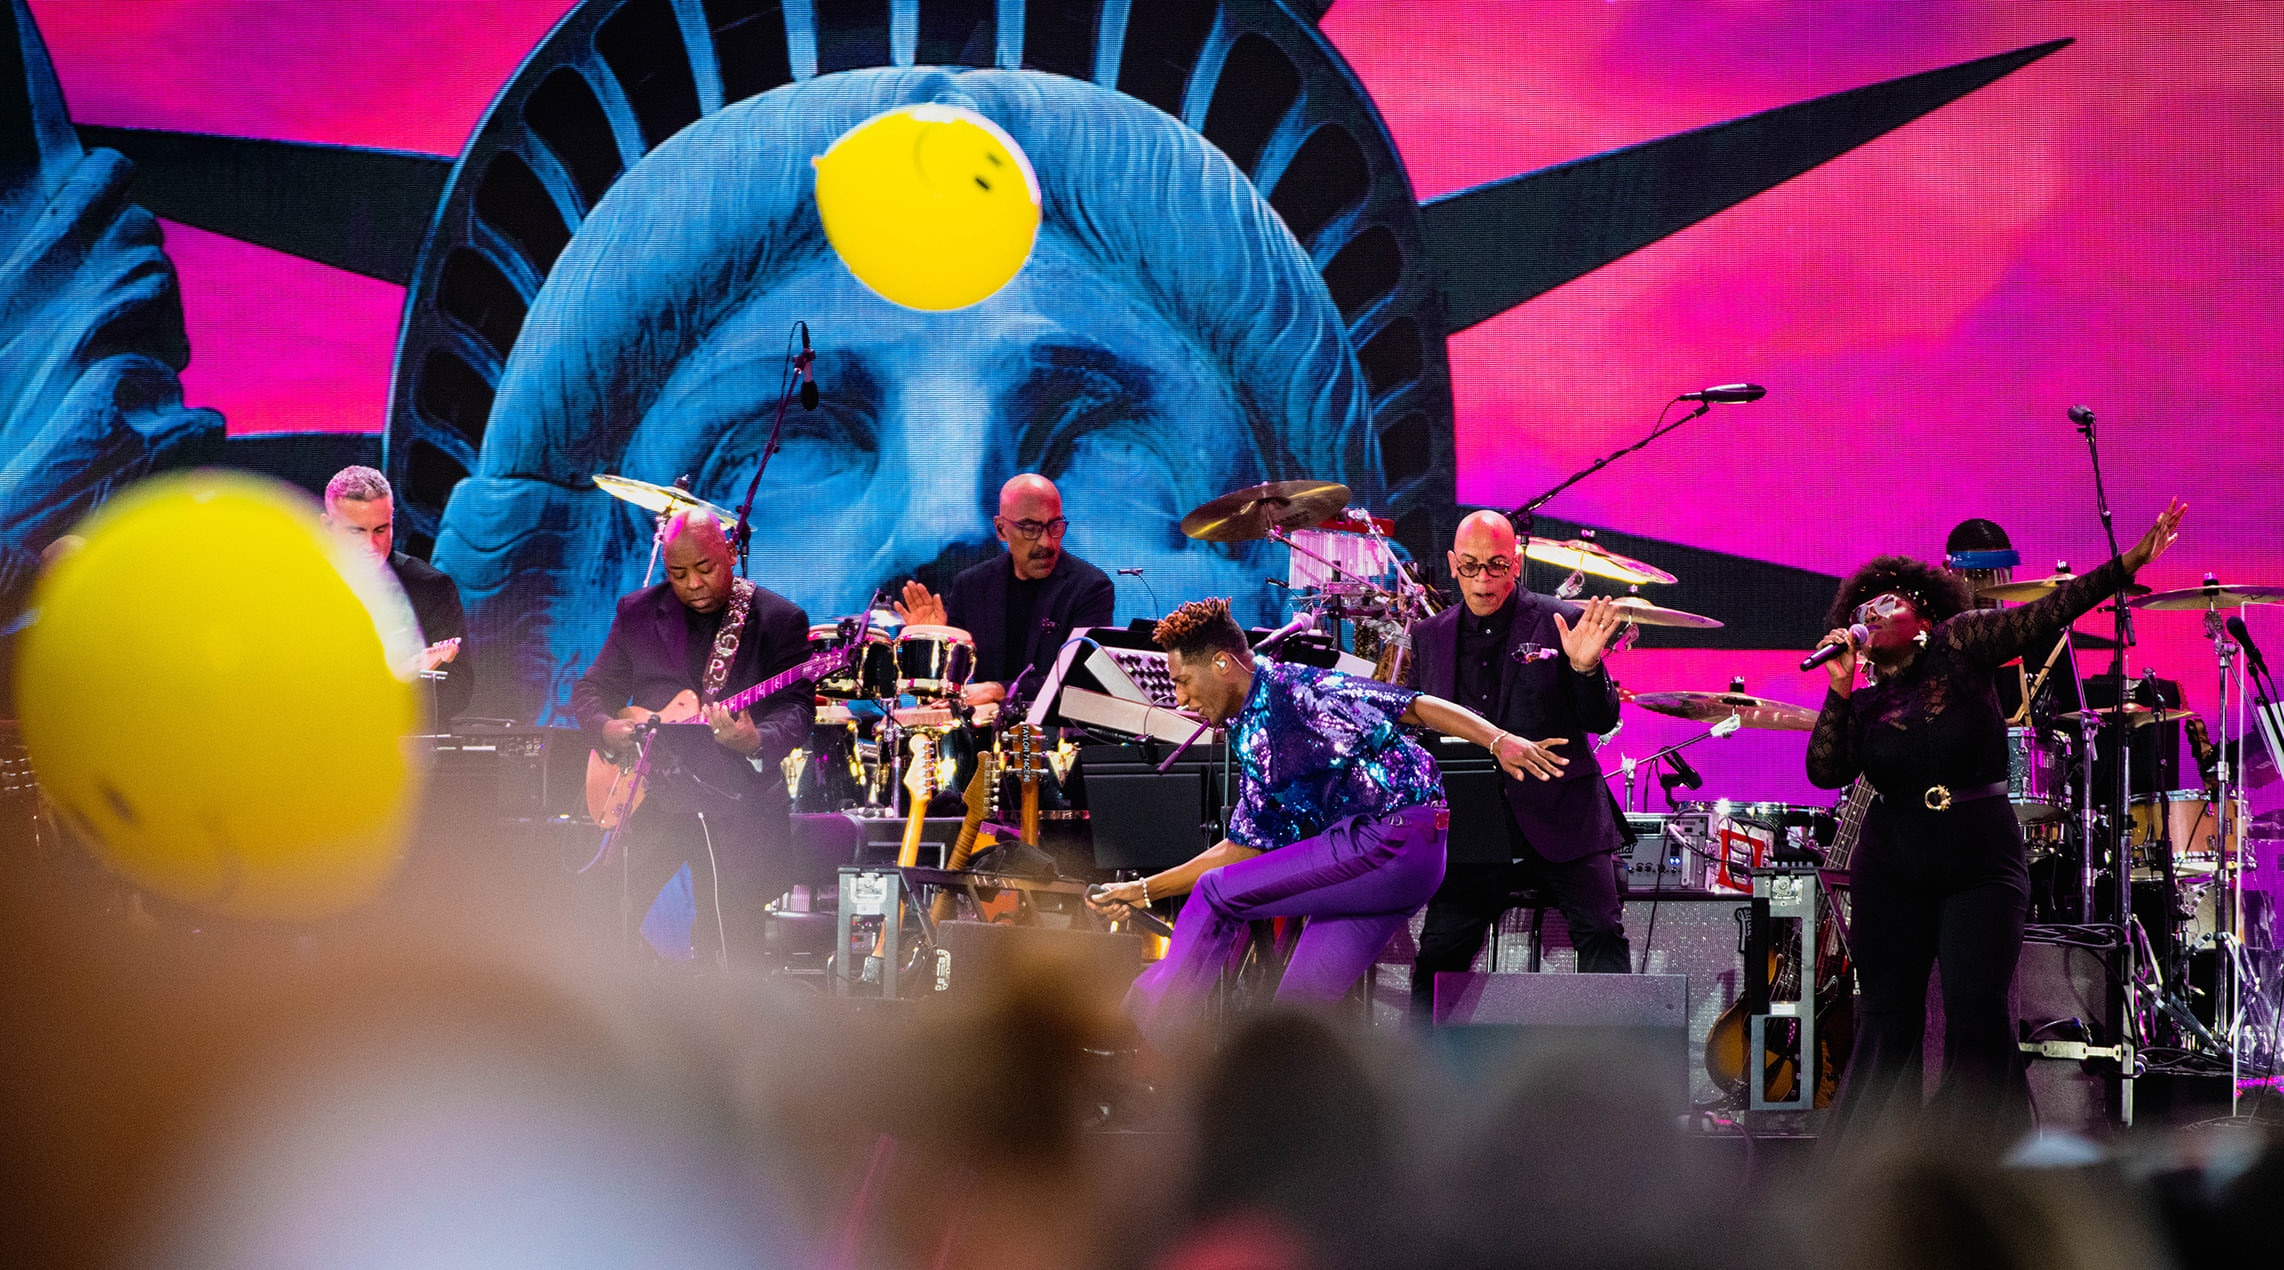 WE LOVE NYC HOMECOMING CONCERT - New York, NY - August 21st, 2021